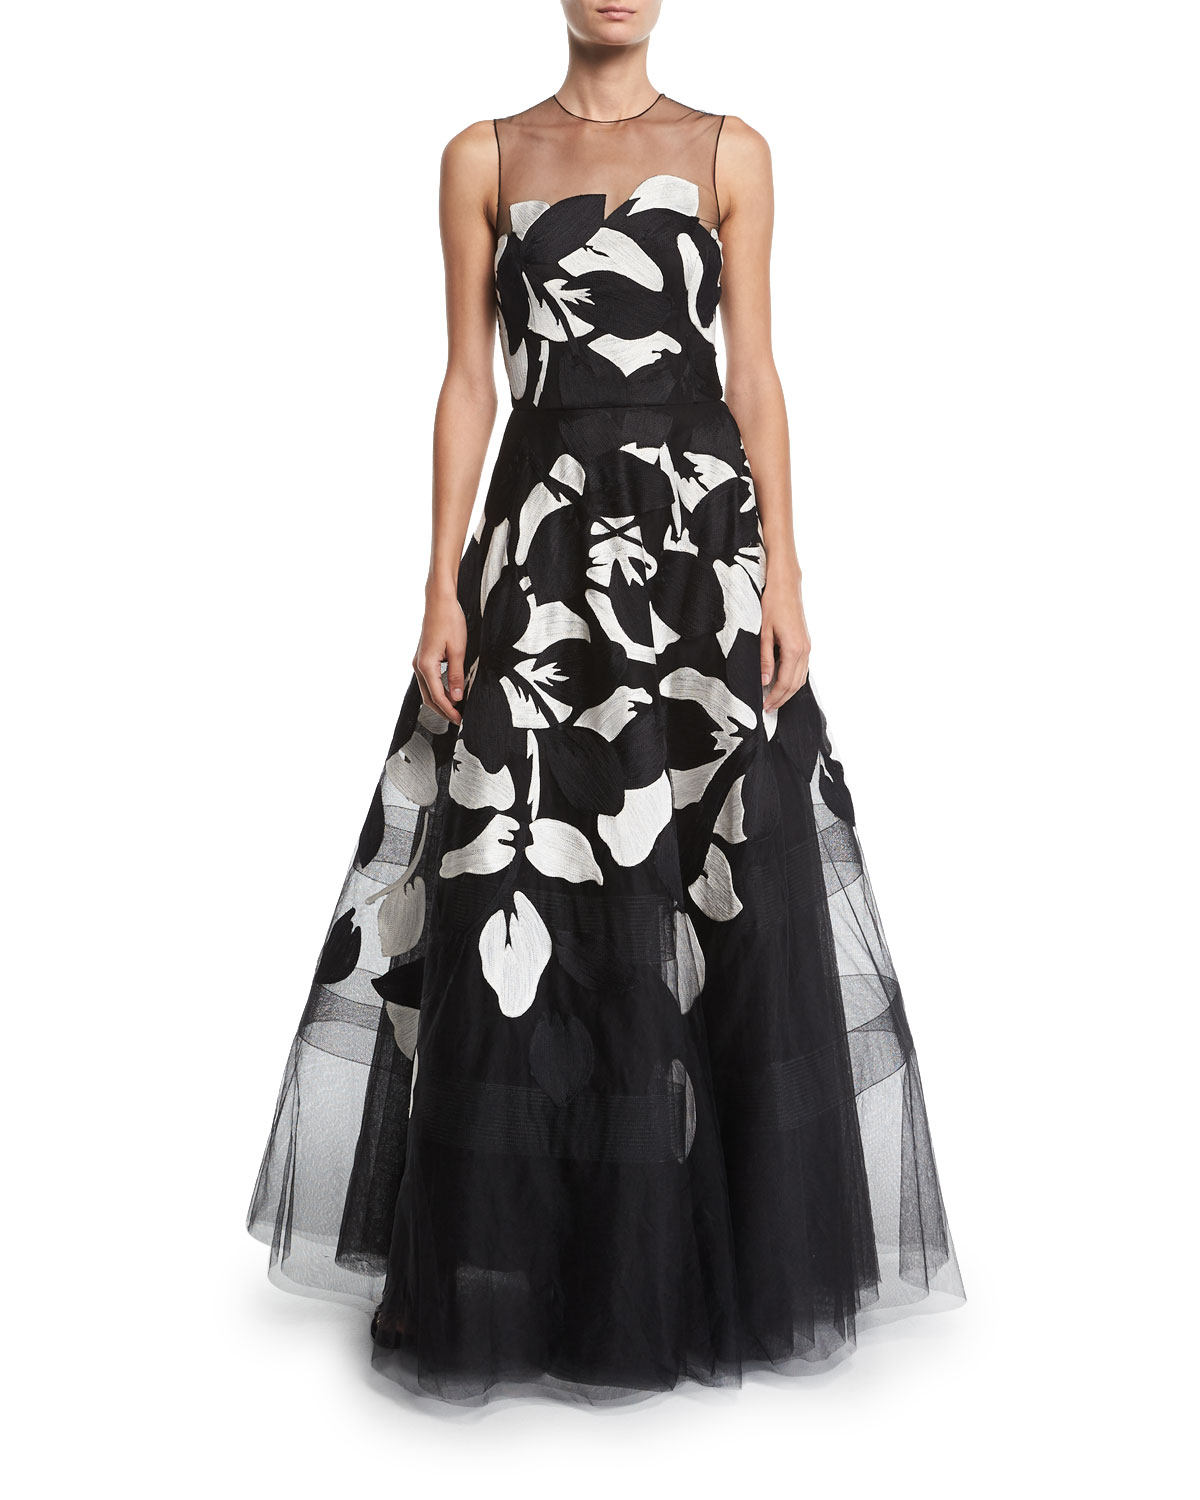 AHLUWALIA Girona Floral-Embroidered Tulle Illusion Gown in Black/White